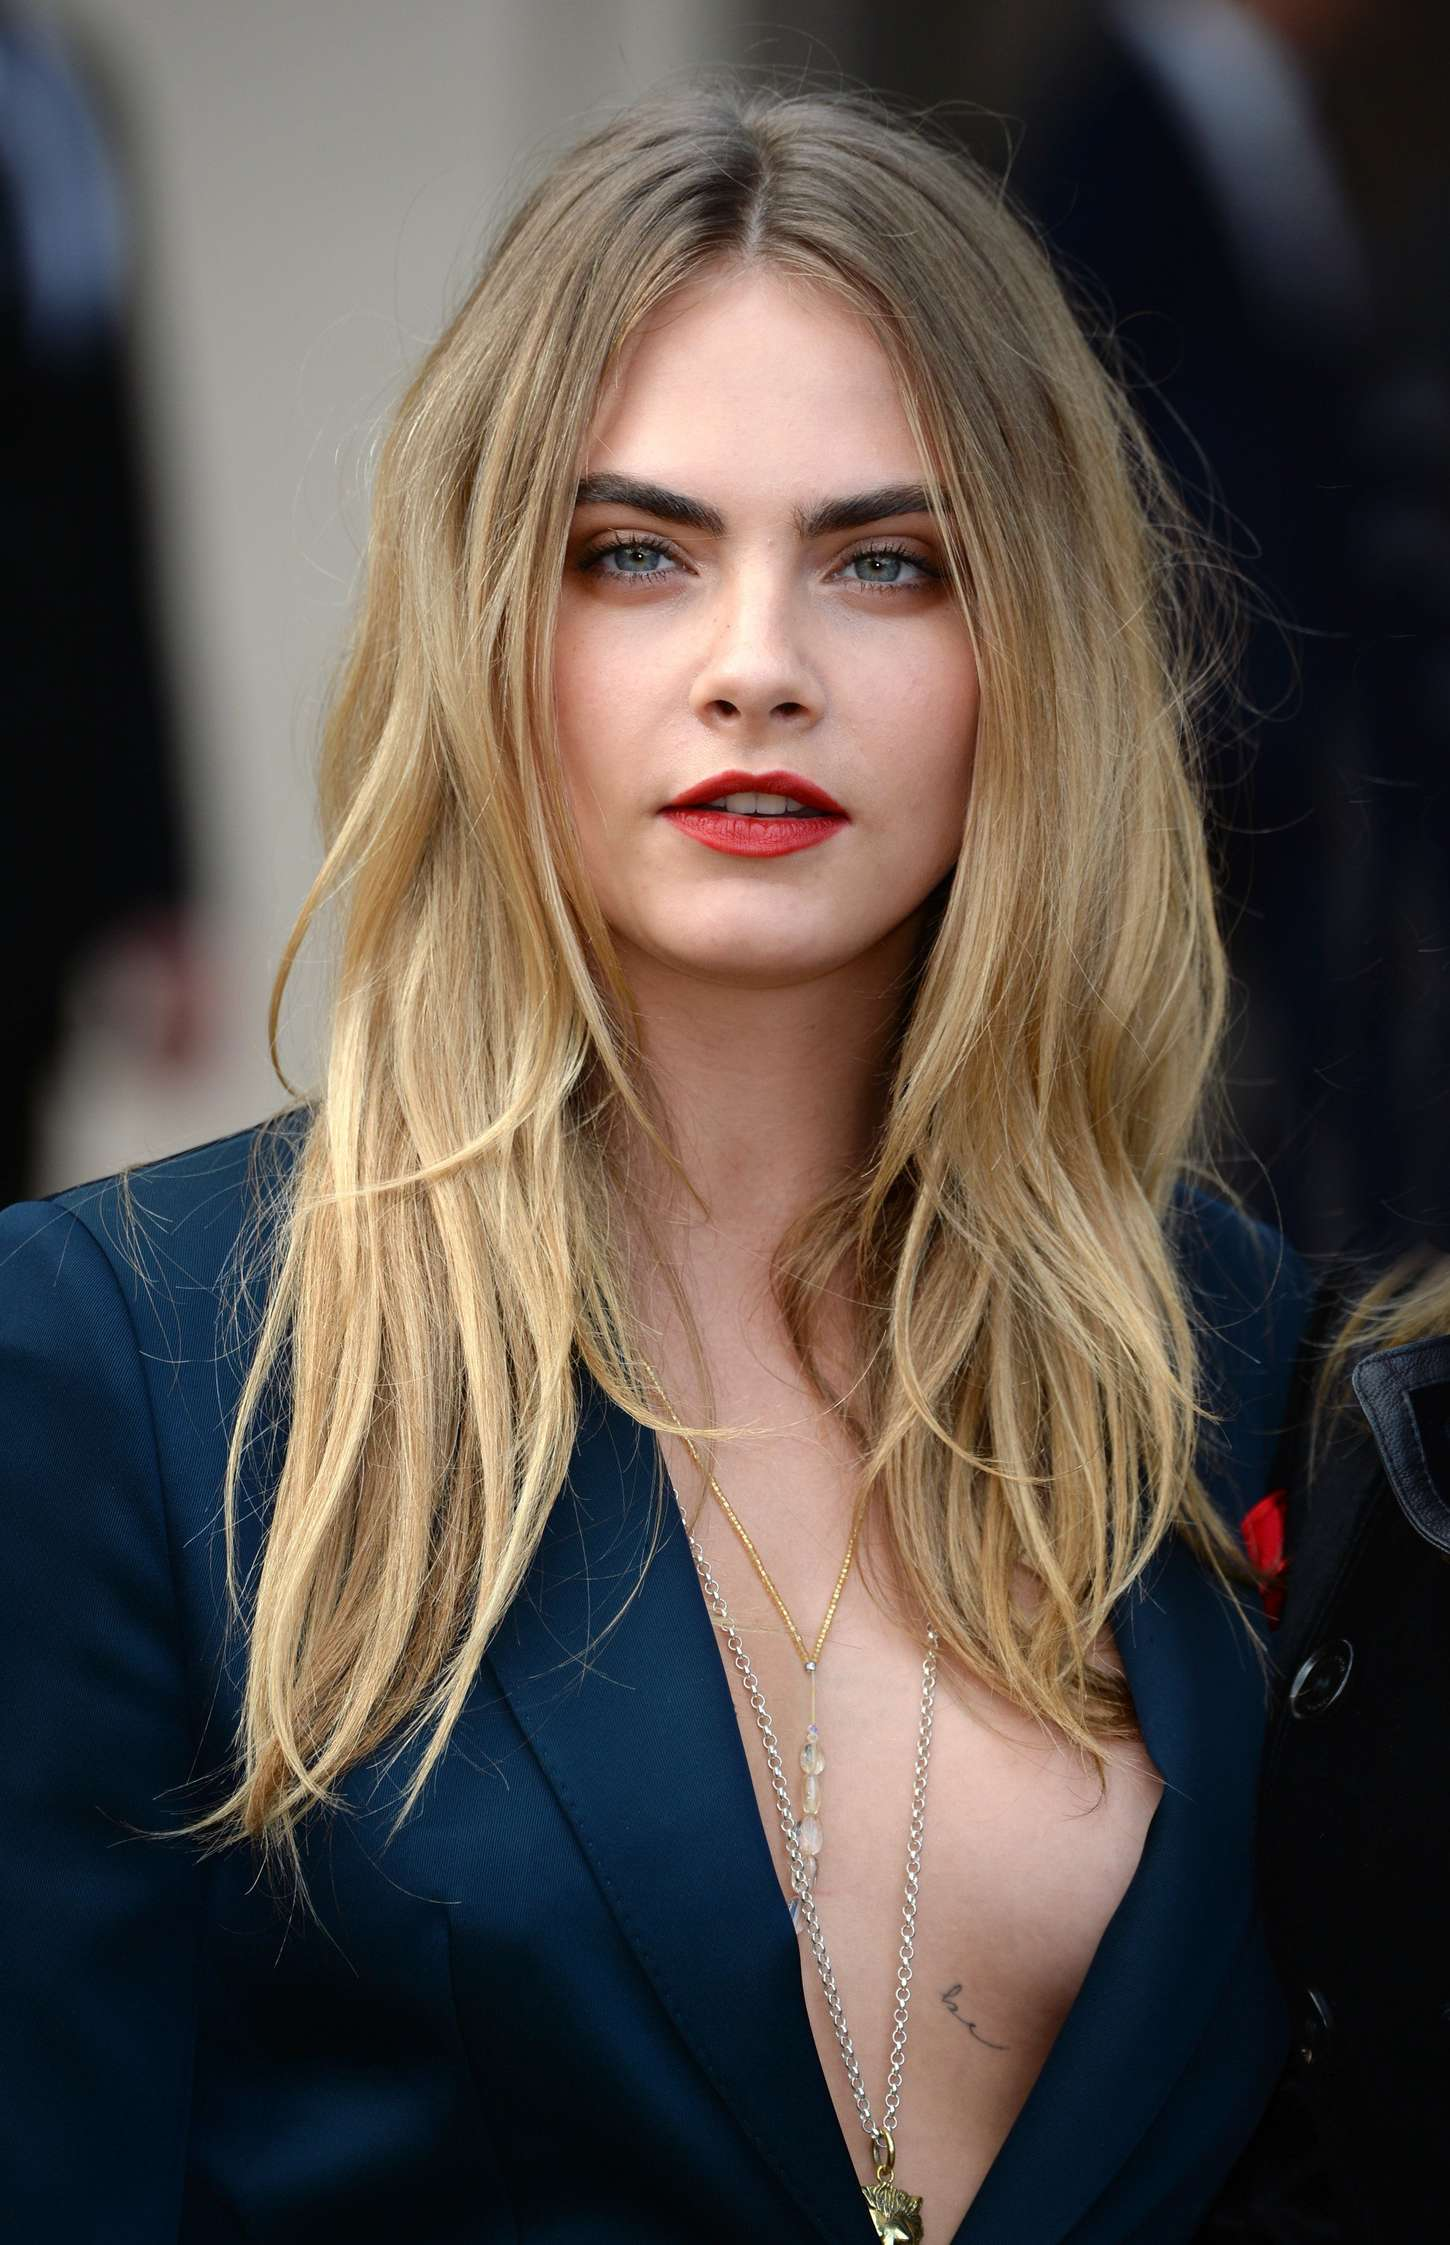 Cara Delevingne Wallpapers hd